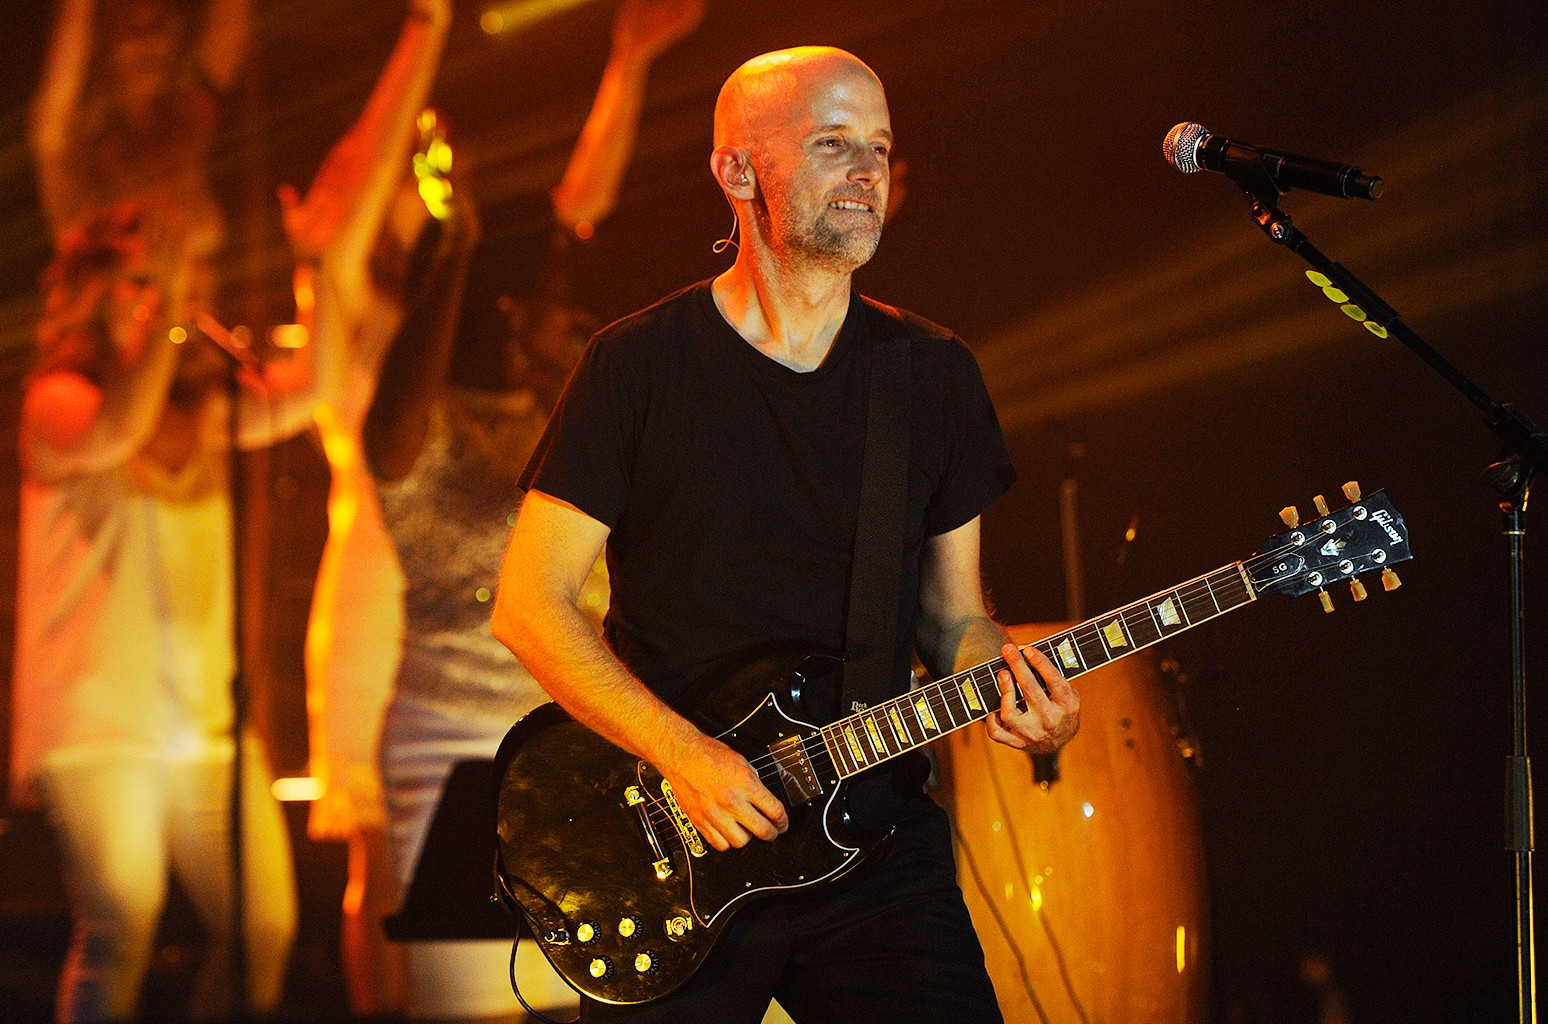 Moby performs with his band at The Fonda Theatre on Oct. 3, 2013 in Los Angeles.